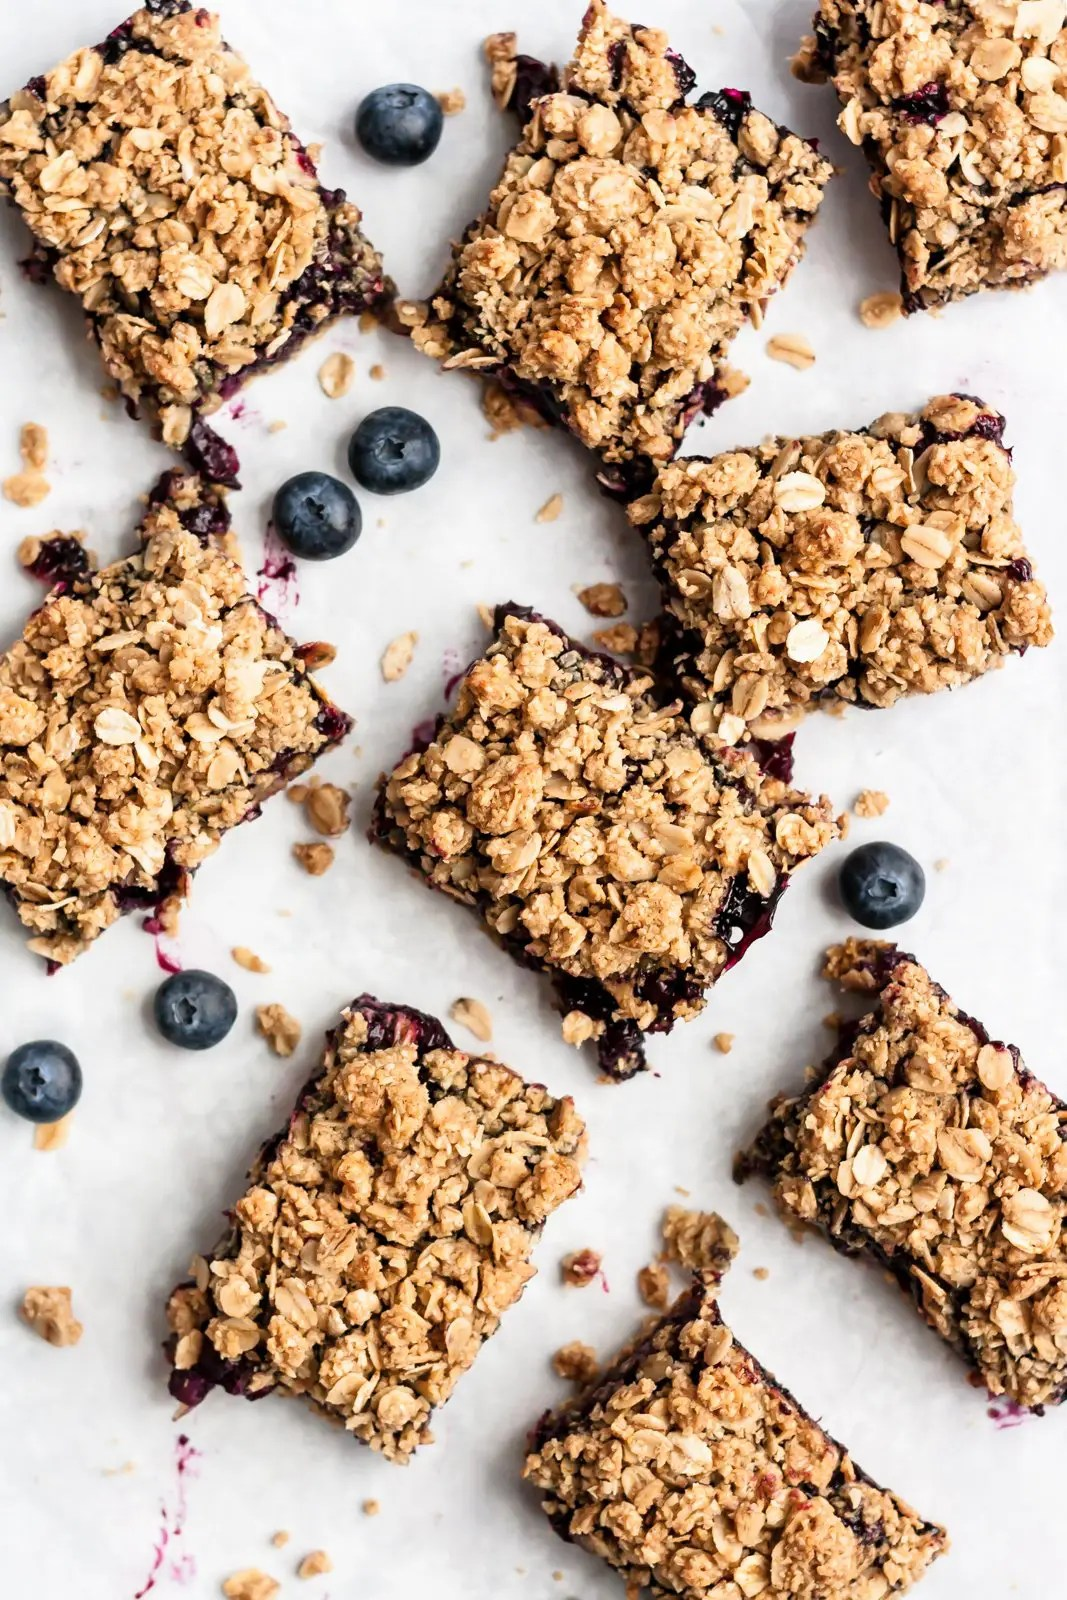 Blueberry Pie Bars with Oatmeal Crumble